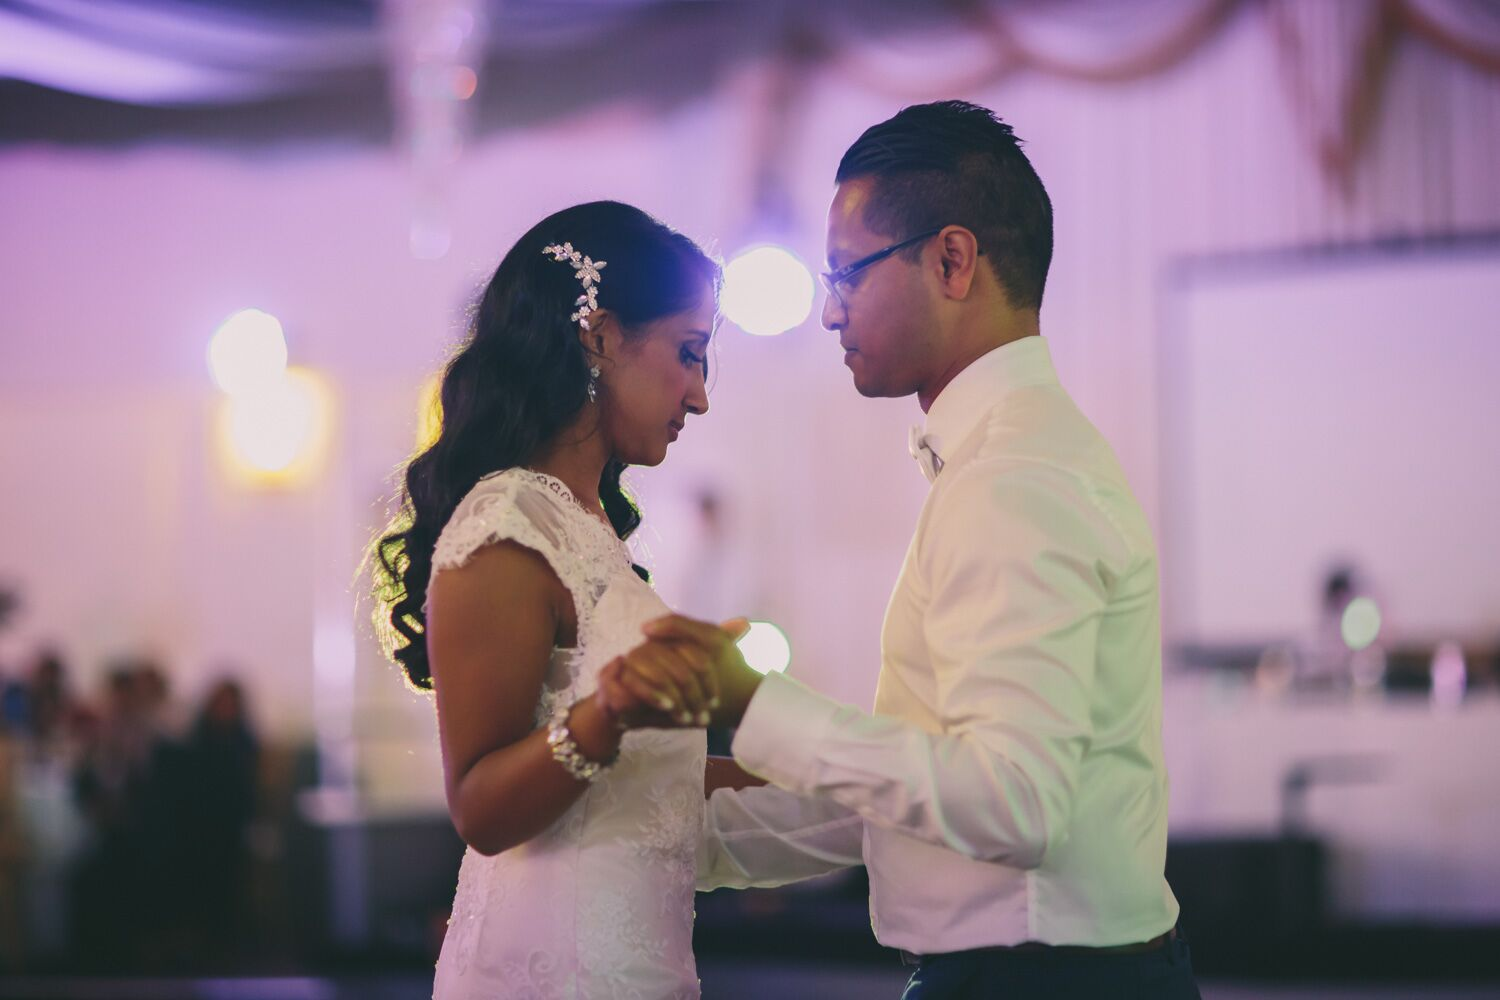 bride in white dancing with groom in white shirt